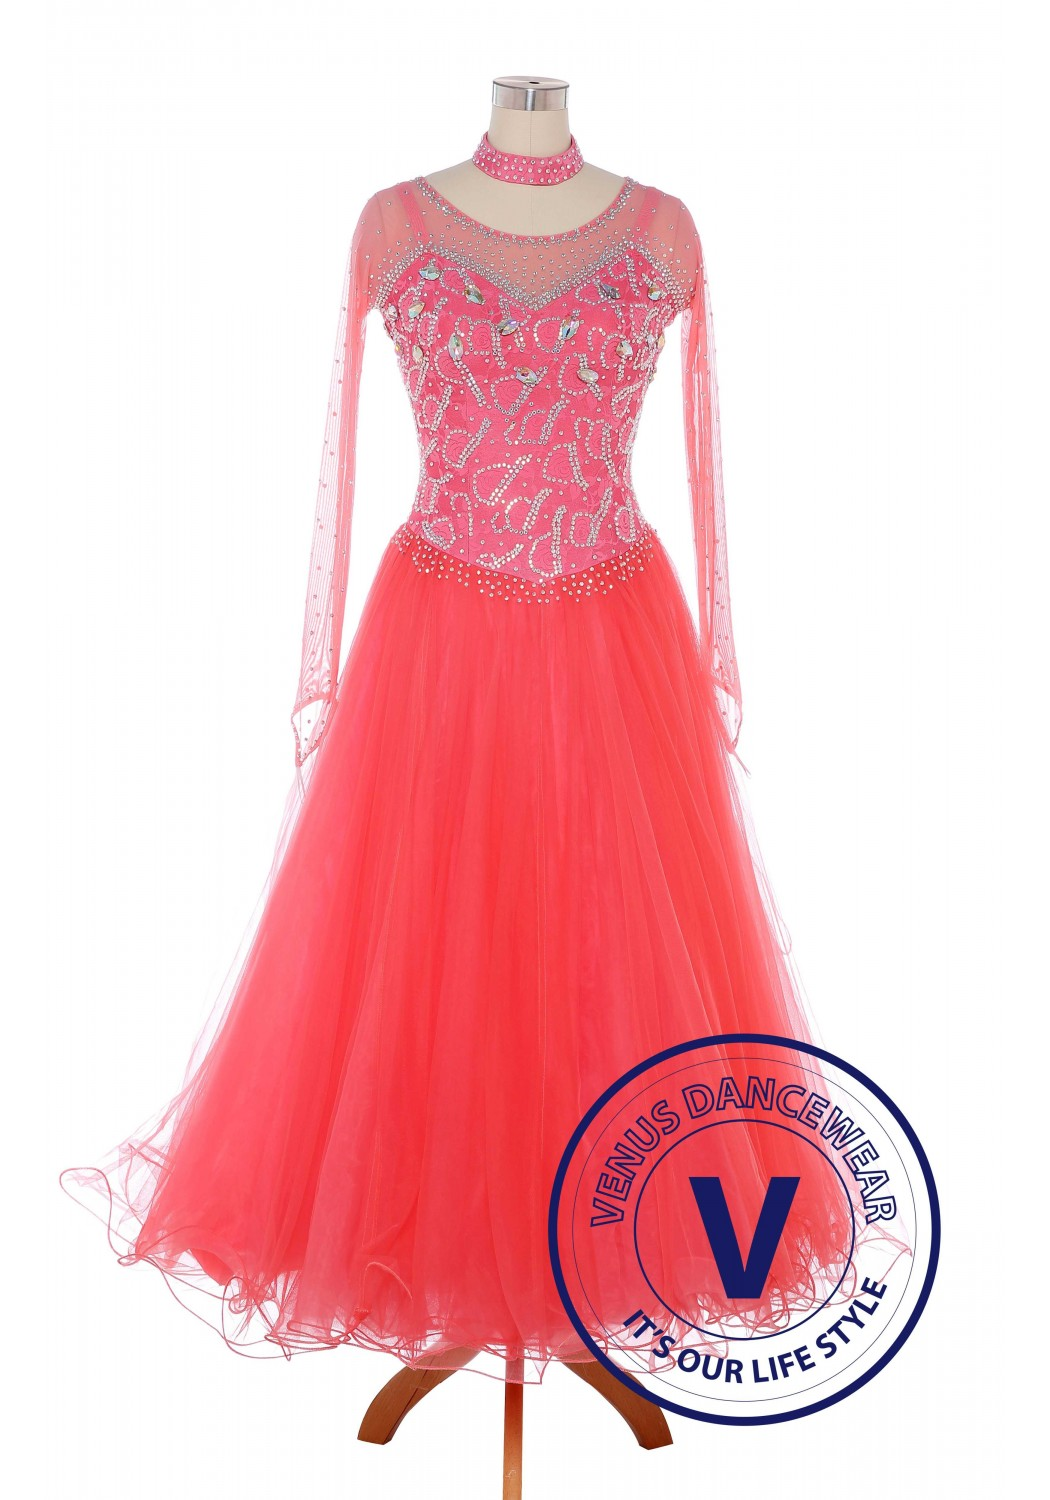 Coral Pink Standard Ballroom Tango Waltz Smooth Competition Dance Dress